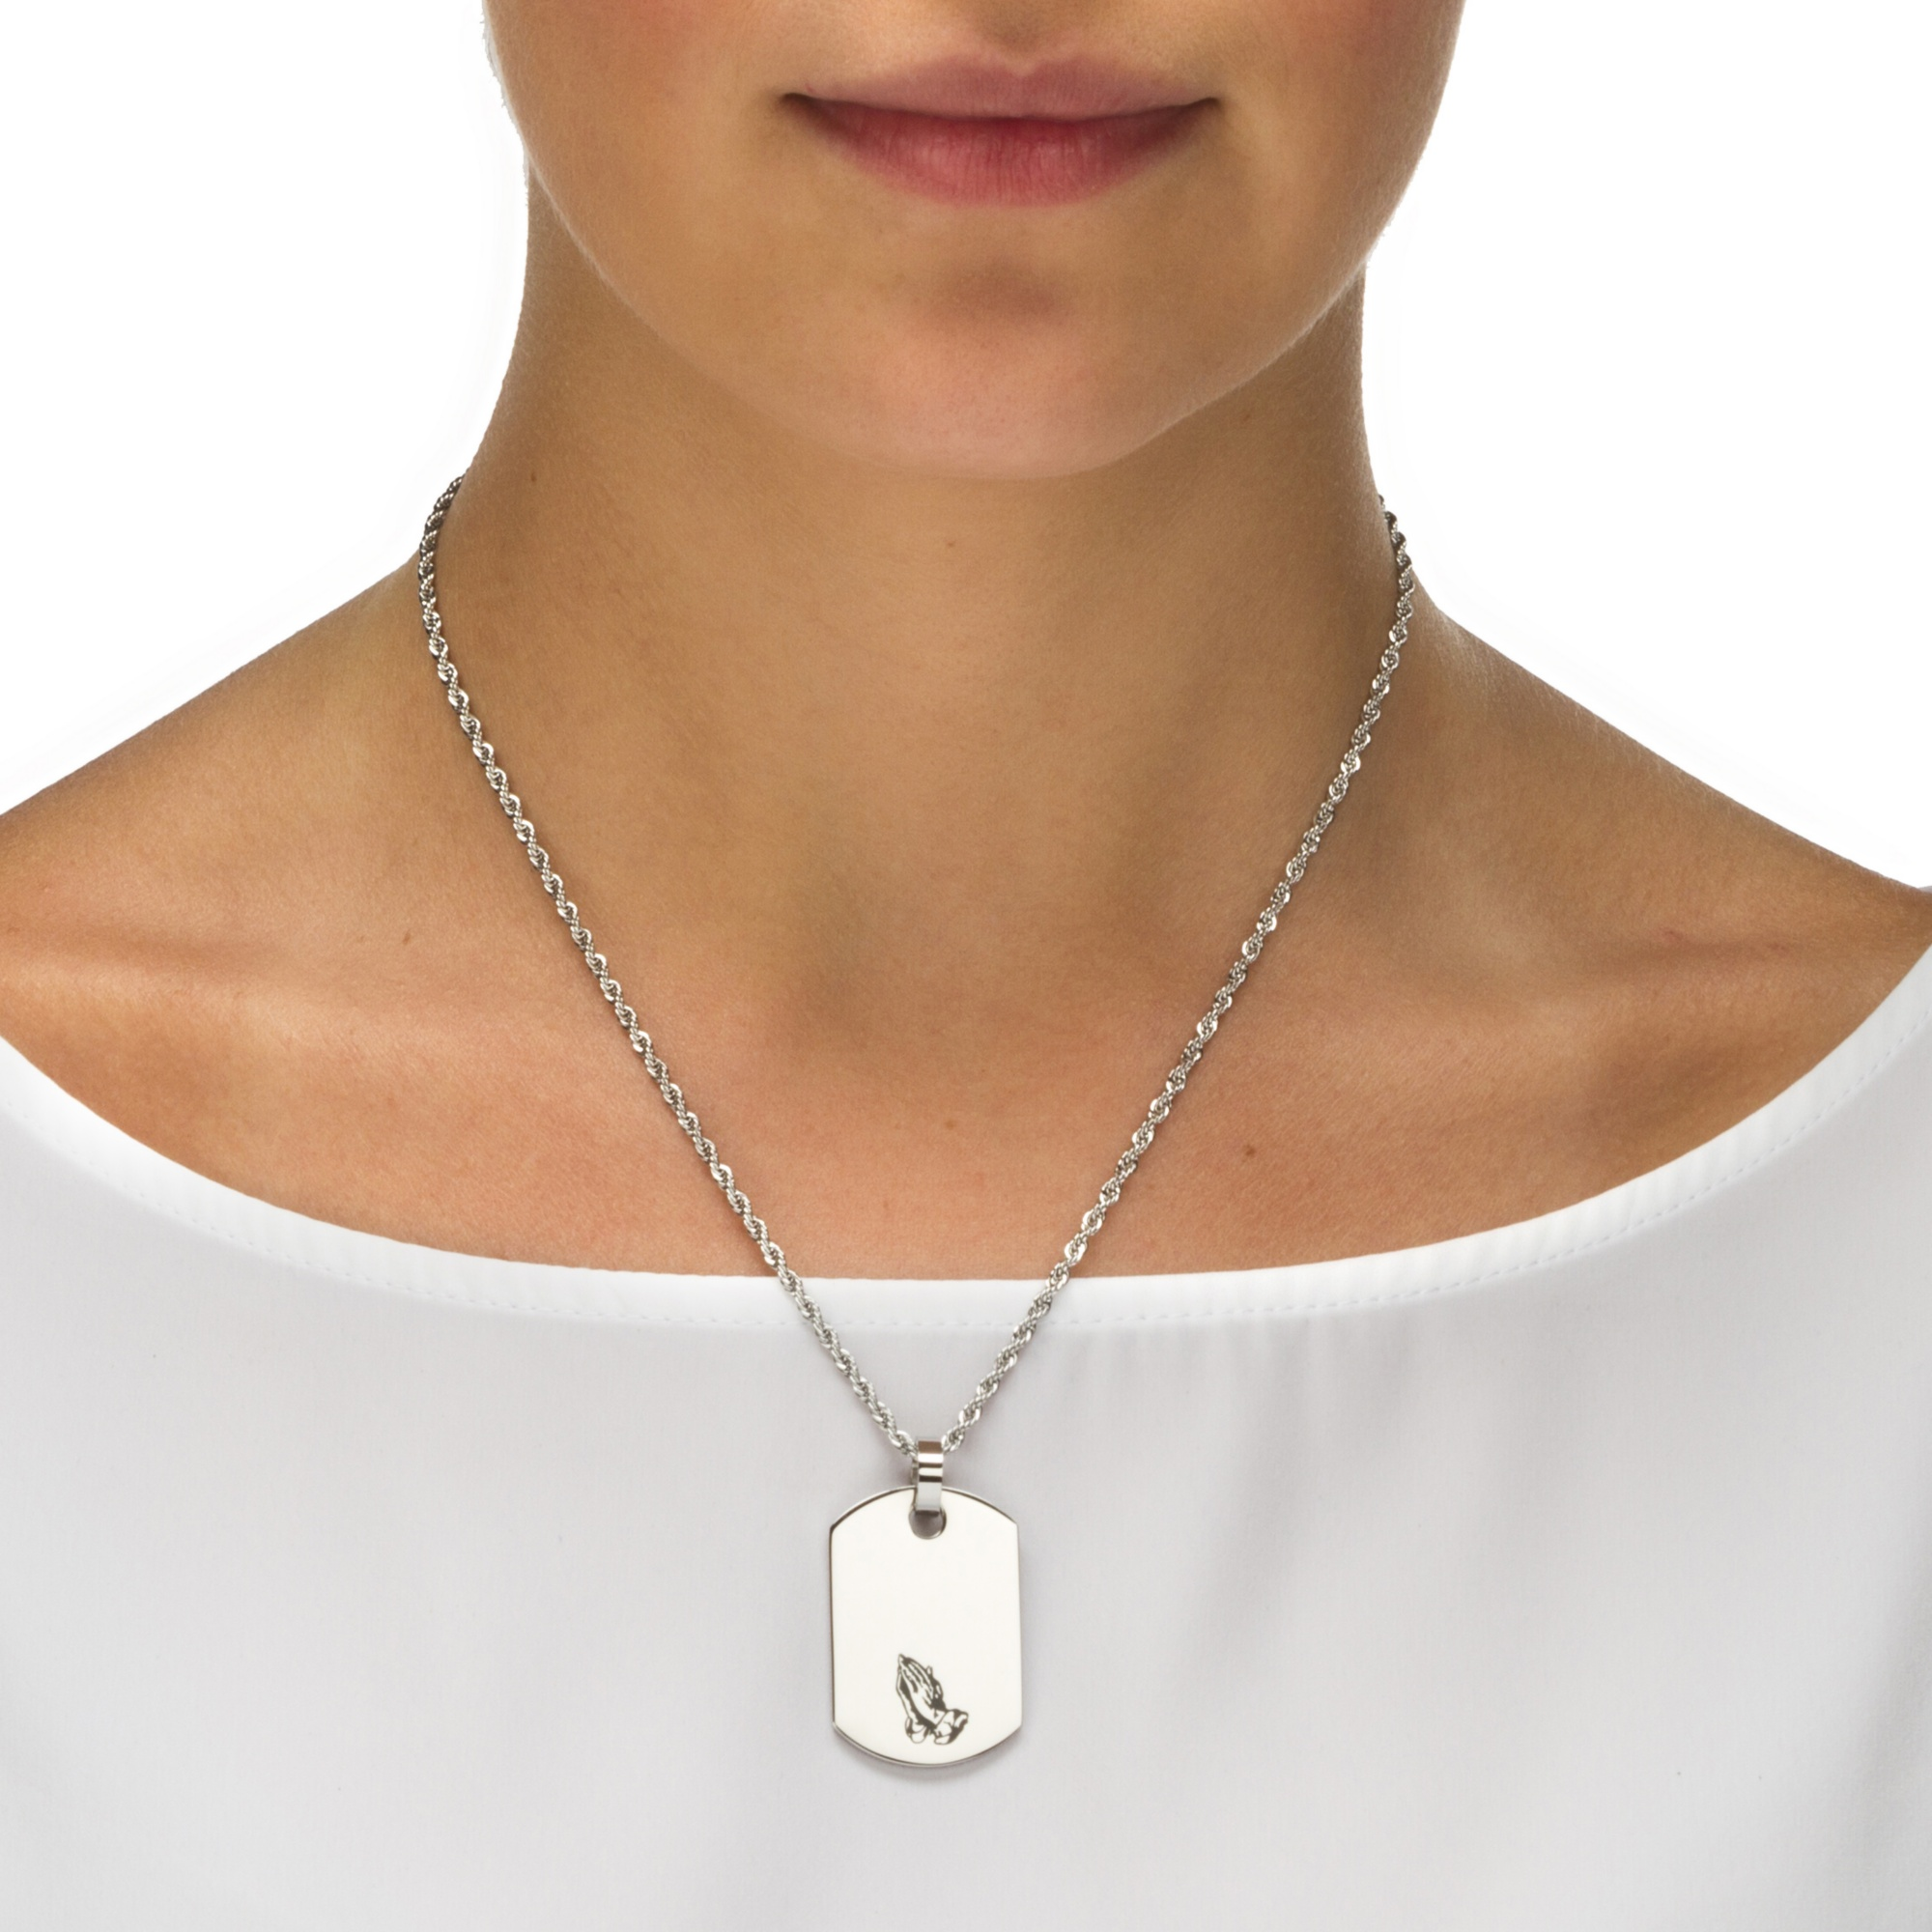 serenity necklace prayer the silver sterling christopher on medal st inch chain